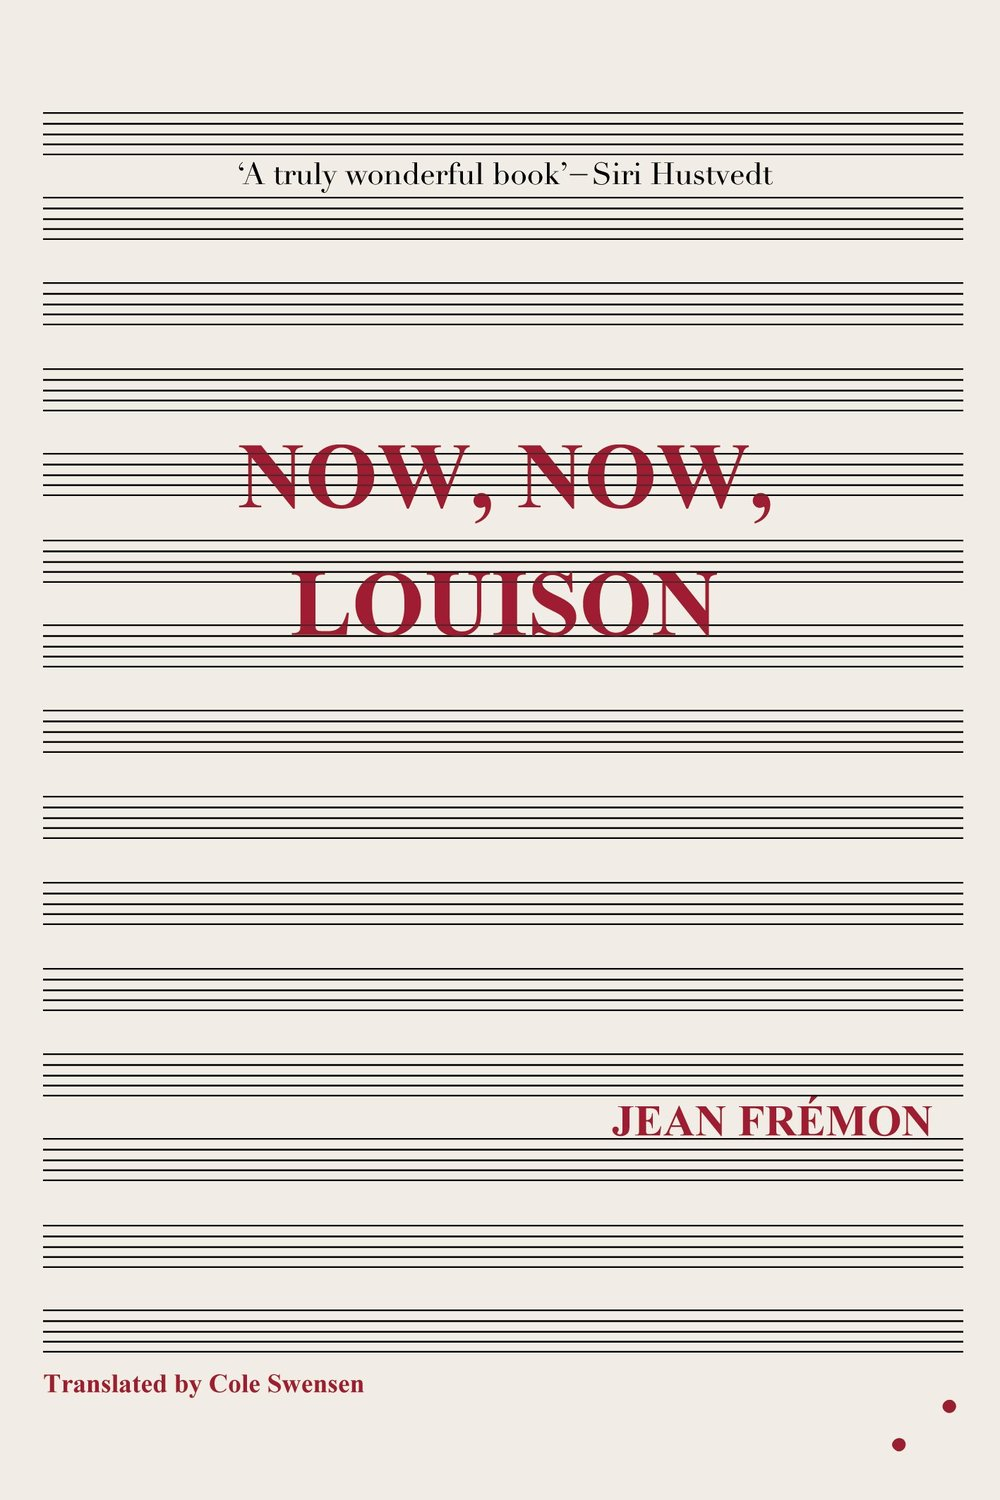 Now, Now, Louison by Jean Frémon, Les Fugitives